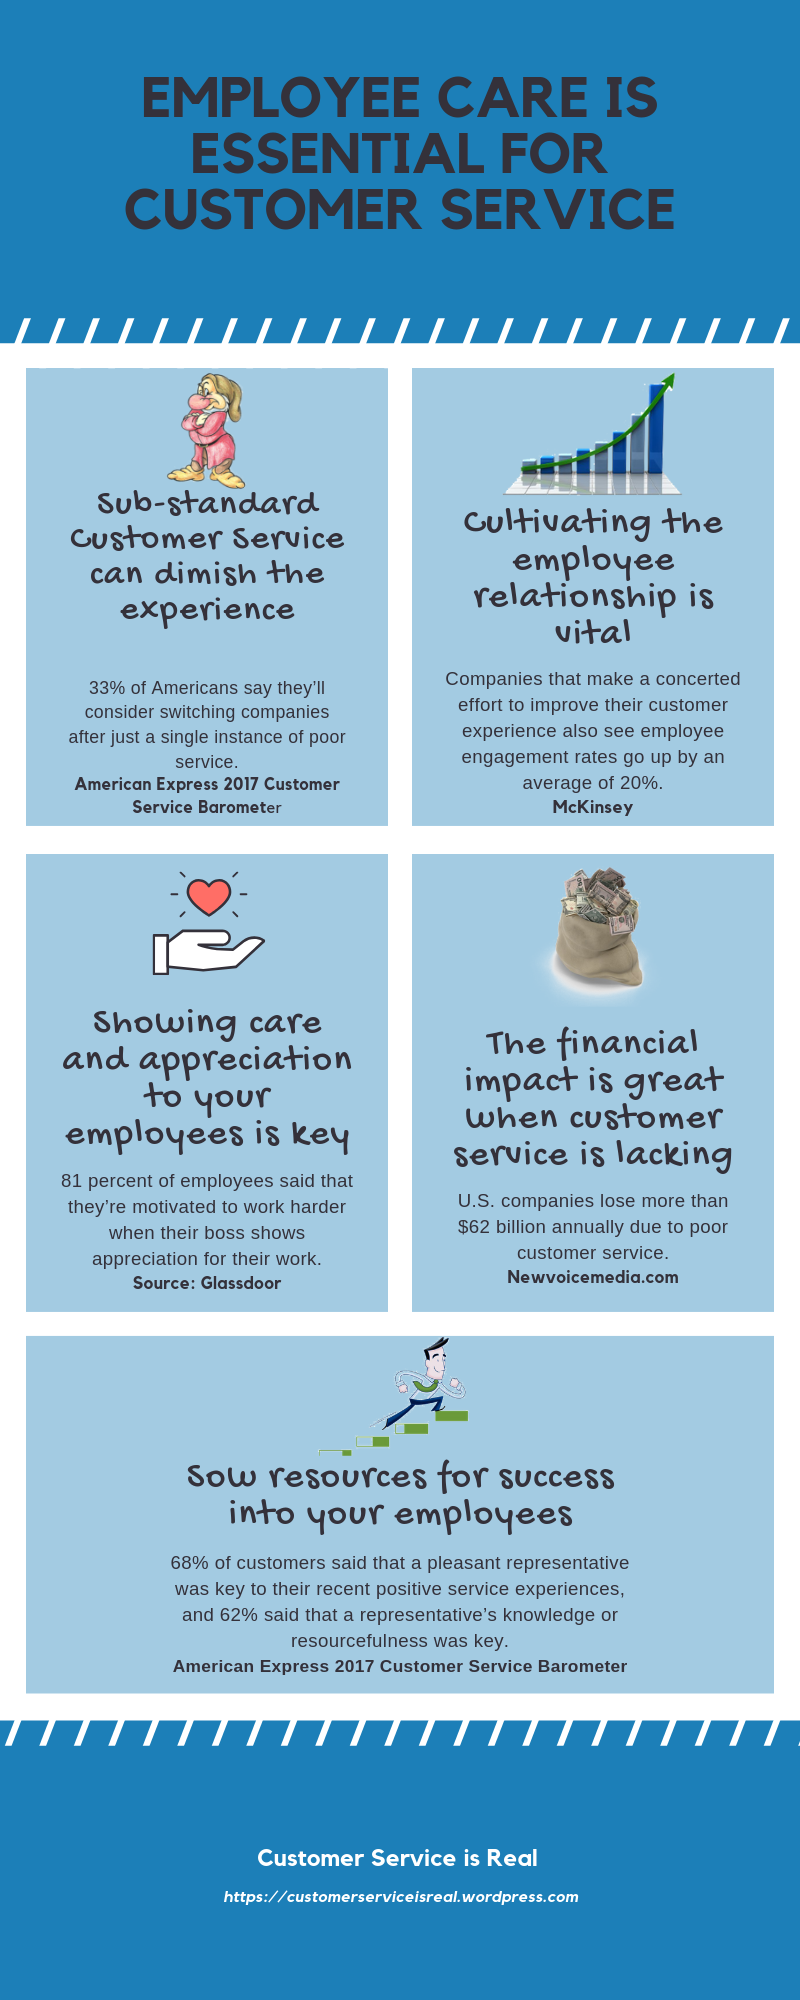 Employee care is essential for customer service